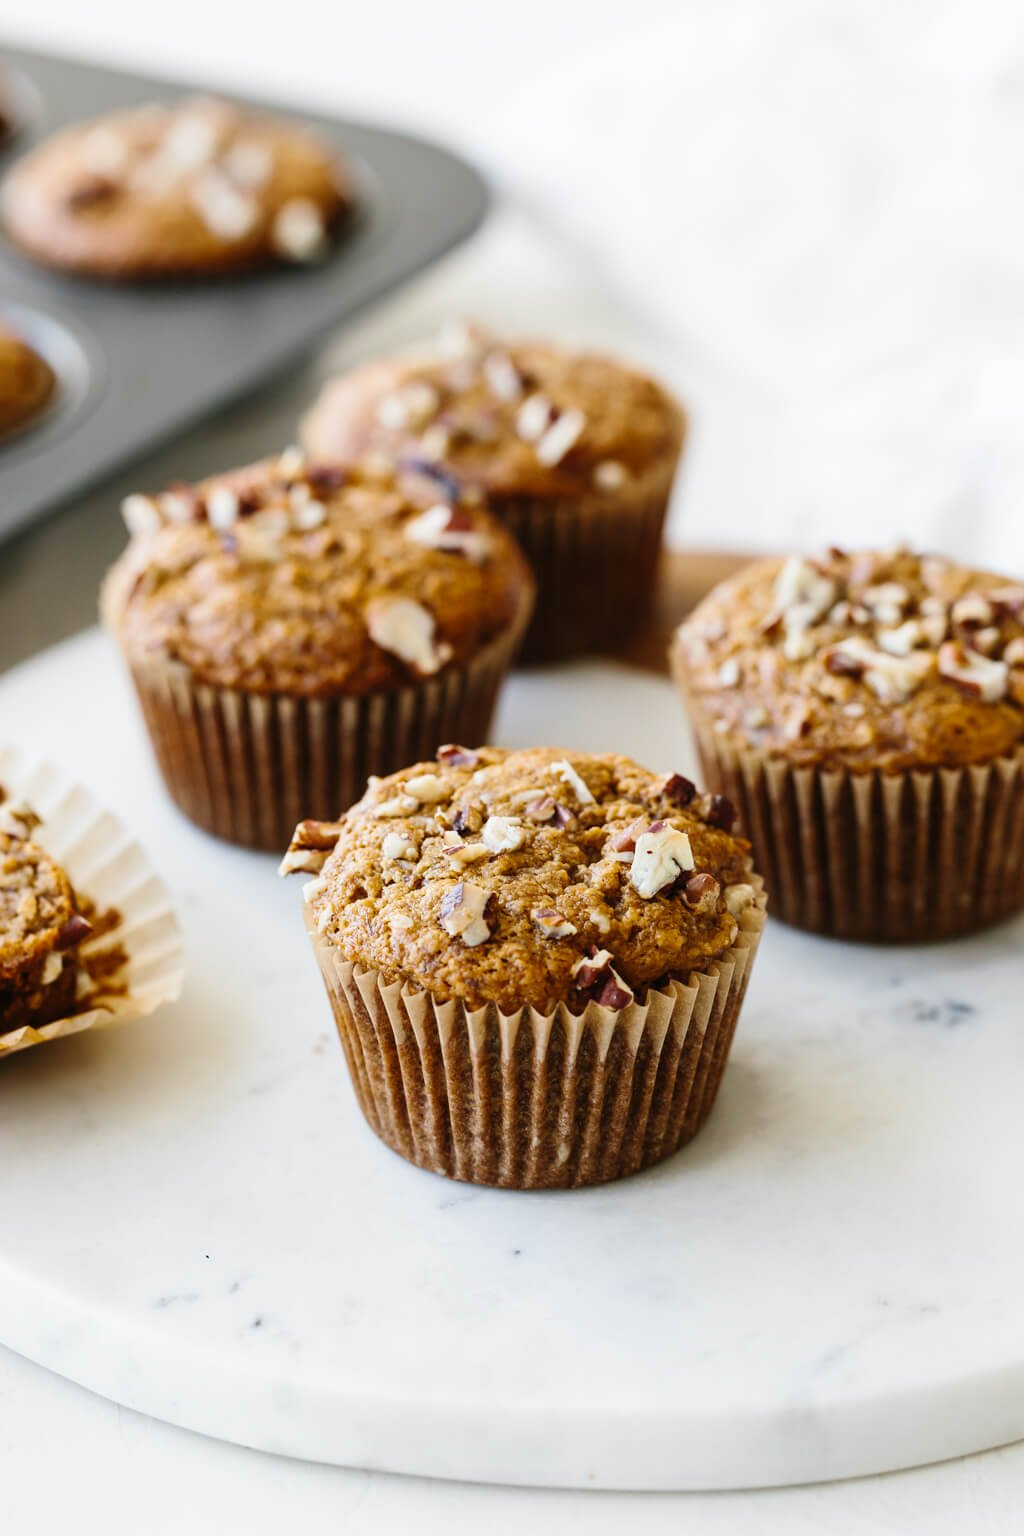 Paleo banana nut muffins are easy to make, delicious and gluten-free and dairy-free. The perfect healthy breakfast recipe and snack!